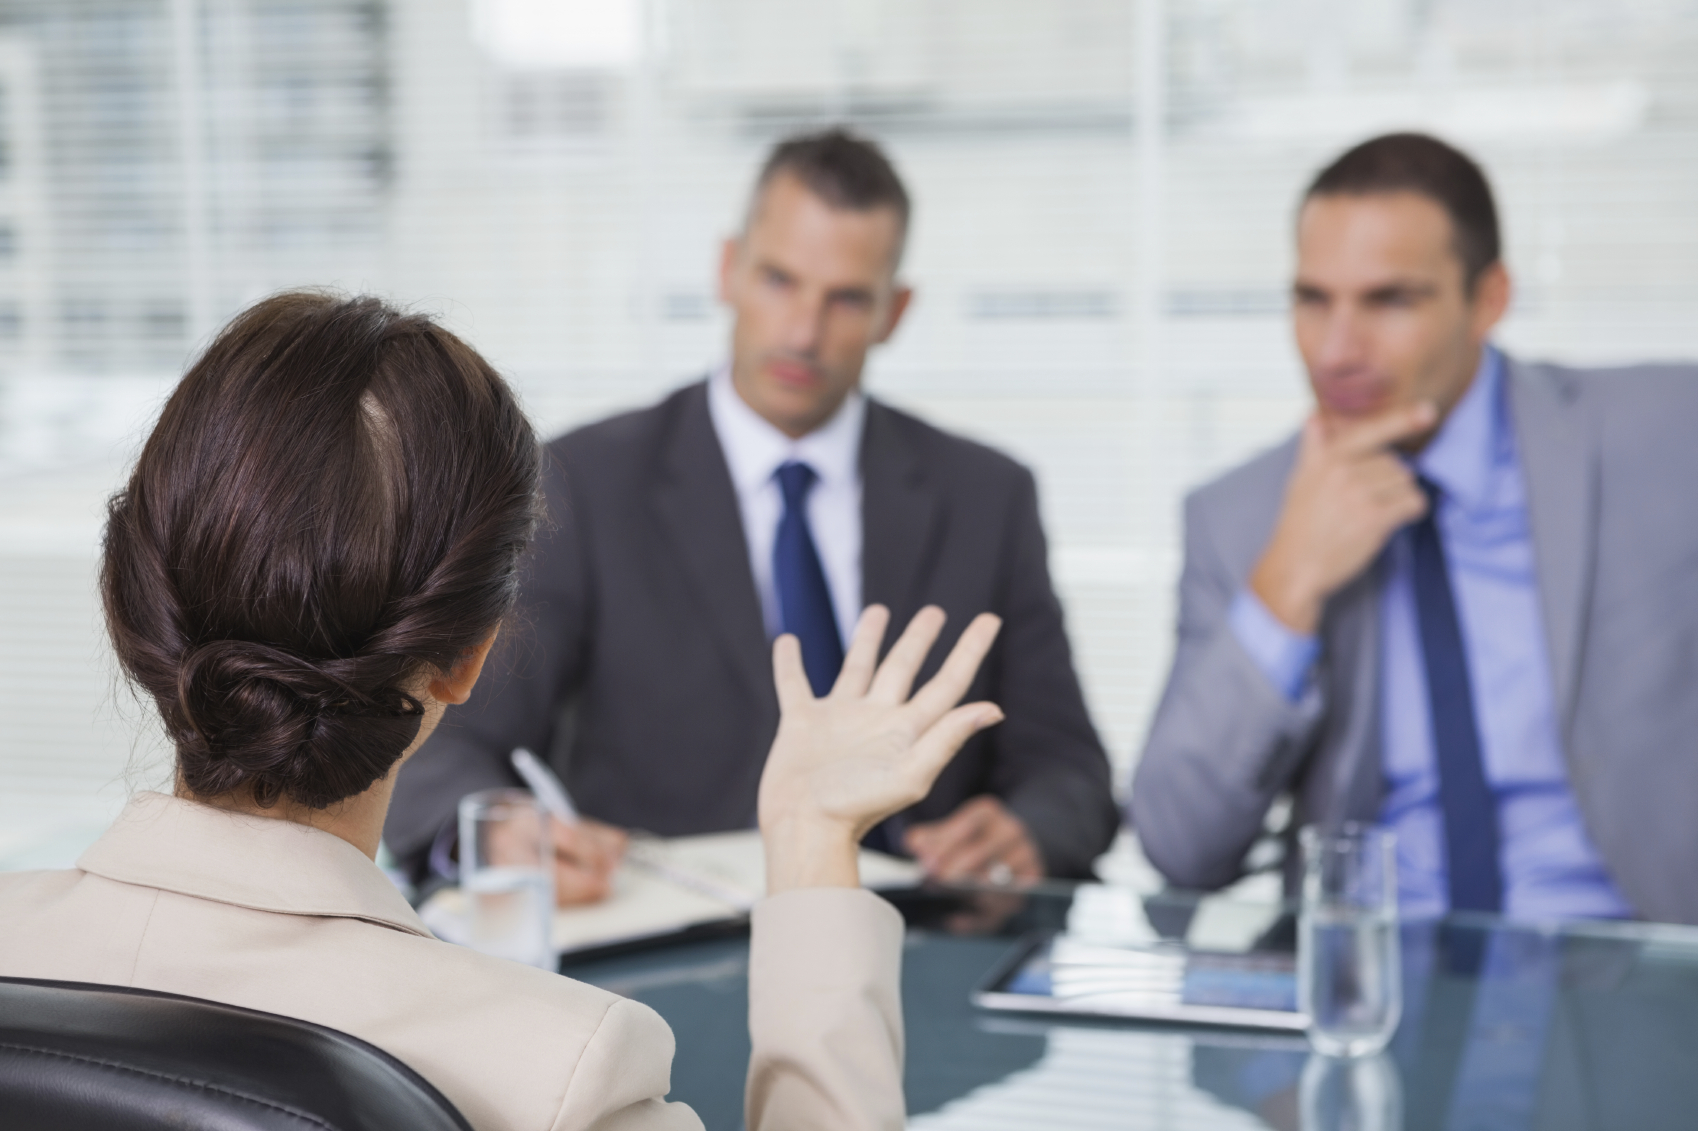 role play interviews and exercises how to succeed body language techniques for top interview performance